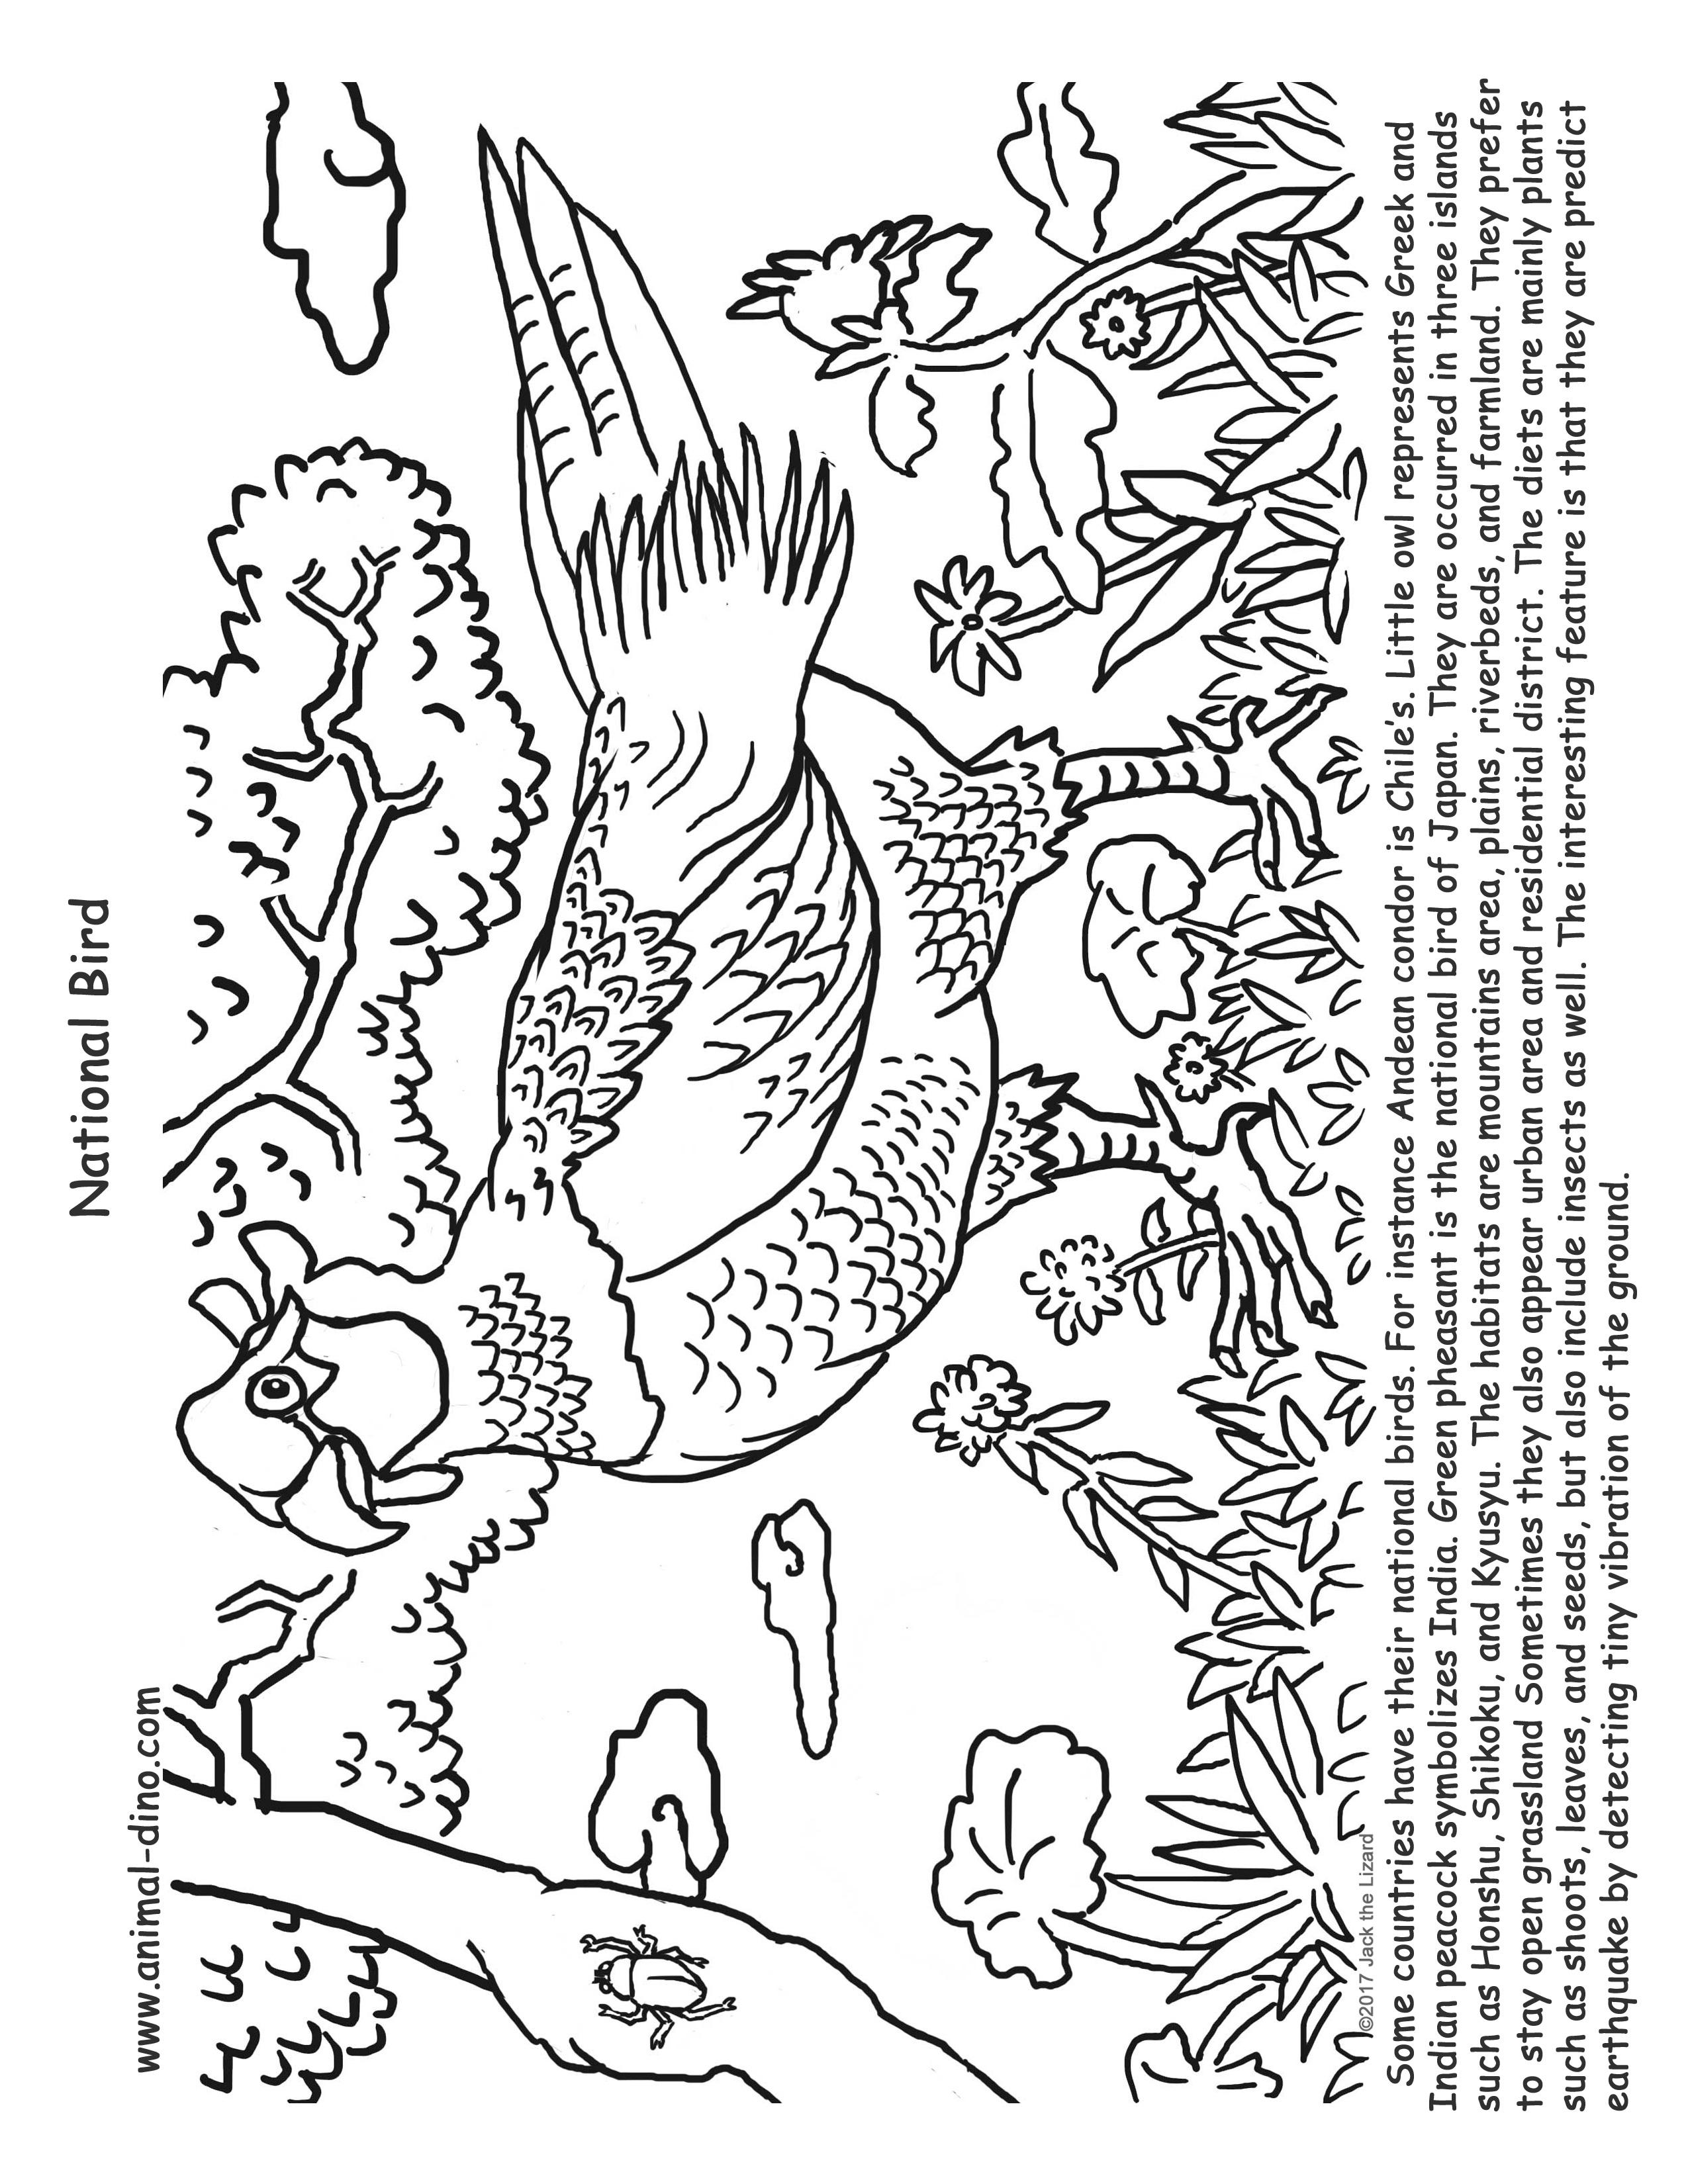 Animal Coloring Page (Green Pheasant) Print Size - Jack the Lizared ...